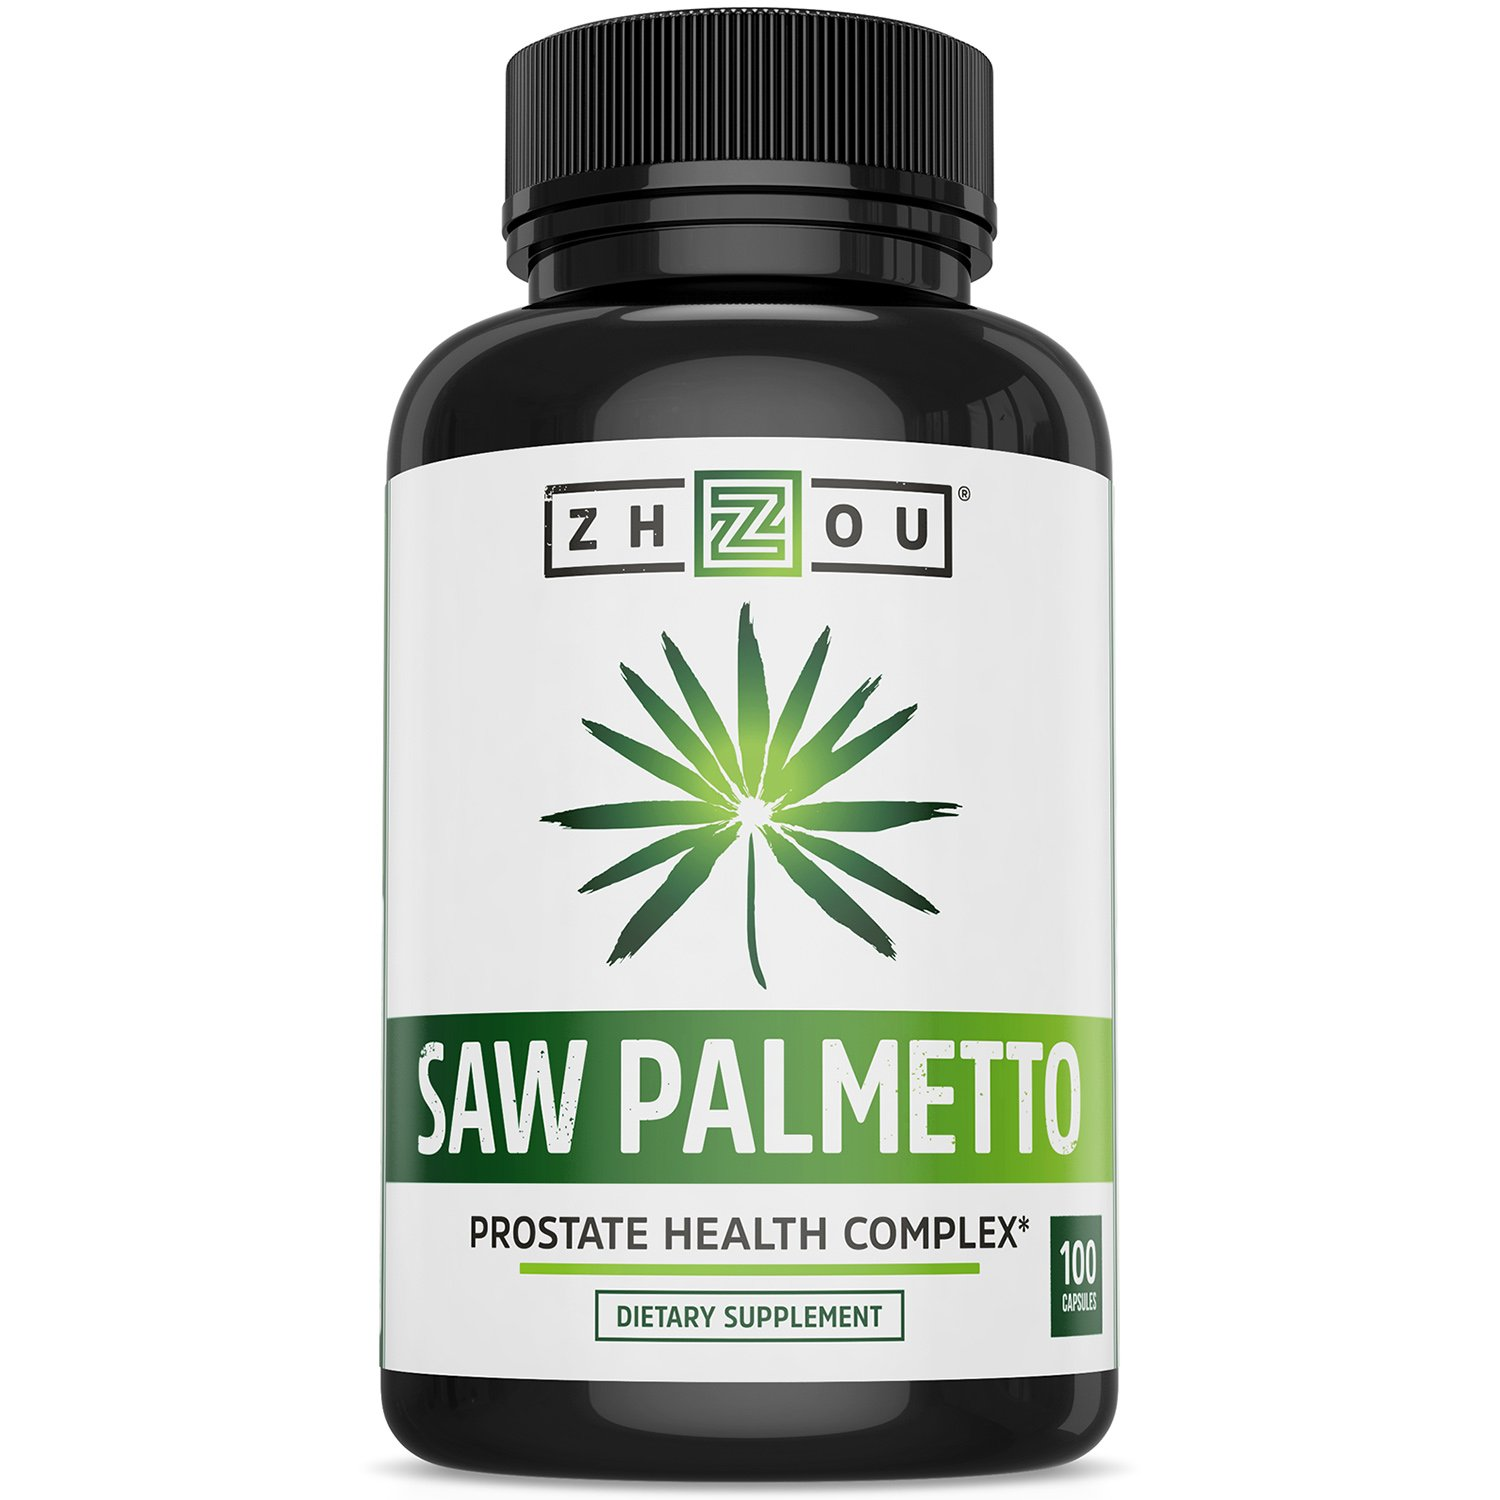 Saw Palmetto Supplement For Prostate Health - Extract & Berry Powder Complex - Healthy Urination Frequency & Flow Formula - May Help Block DHT - 500mg Capsules by Zhou Nutrition